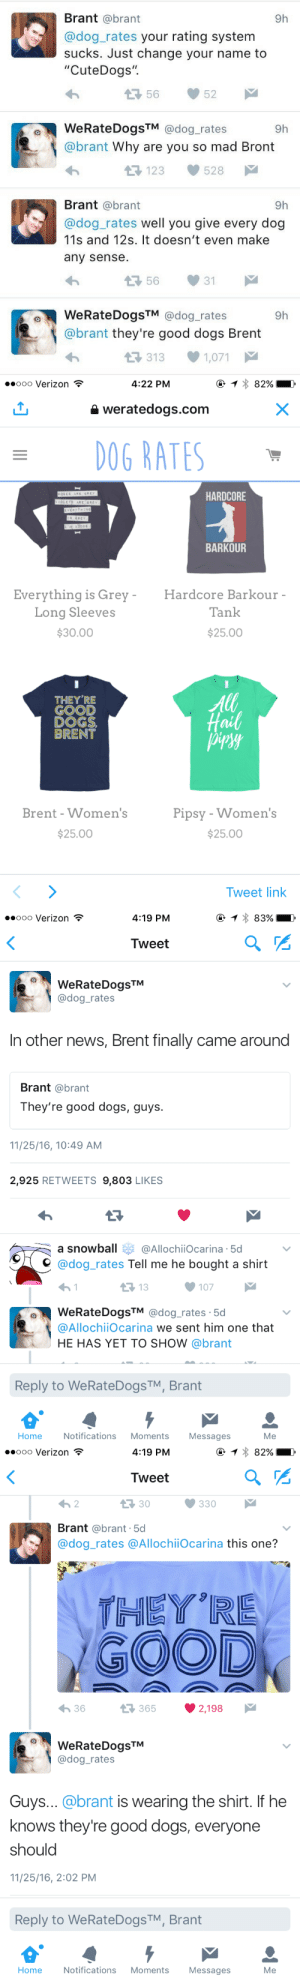 """Re Good: Brant @brant  @dog_rates your rating system  sucks. Just change your name to  """"CuteDogs"""".  9h  35652  WeRateDogsTM @dog_rates  @brant Why are you so mad Bront  9h  1123528  Brant @brant  @dog_rates well you give every dog  11s and 12s. It doesn't even make  any sense.  9h  WeRateDogsTM @dog_rates  @brant they're good dogs Brent  9h  3131,071   ..ooo Verizon  4:22 PM  weratedogs.com  0G RATES  HARDCORE  BARKOUR  Everything is Grey Hardcore Barkour  Tank  Long Sleeves  $30.00  $25.00  THEY'RE  GOOD  DOGS  BRENT  Hail  Brent -Women's  Pipsy - Women's  $25.00  $25.00  Tweet link   ..ooo Verizon  4:19 PM  Tweet  WeRateDogsTM  C@dog_rates  In other news, Brent finally came around  Brant @brant  They're good dogs, guys  11/25/16, 10:49 AM  2,925 RETWEETS 9,803 LIKES  a snowball@AllochiiOcarina 5d  C. @dog-rates Tell me he bought a shirt  13  107  WeRateDogsTM @dog_rates .5d  @AllochiiOcarina we sent him one that  HE HAS YET TO SHOW @brant  Reply to WeRateDogsTM, Brant  Home  Notifications Moments  Messages  Me   ooo Verizon  4:19 PM  Tweet  3 30  Brant @brant.5d  @dog_rates @AllochiiOcarina this one?  THEY RE  GOOD  36  3652,198  WeRateDogsTM  adog_rates  Guys... @brant is wearing the shirt. If he  knows they're good dogs, everyone  should  11/25/16, 2:02 PM  Reply to WeRateDogs TM, Brant  Home  Notifications Moments Messages  Me"""